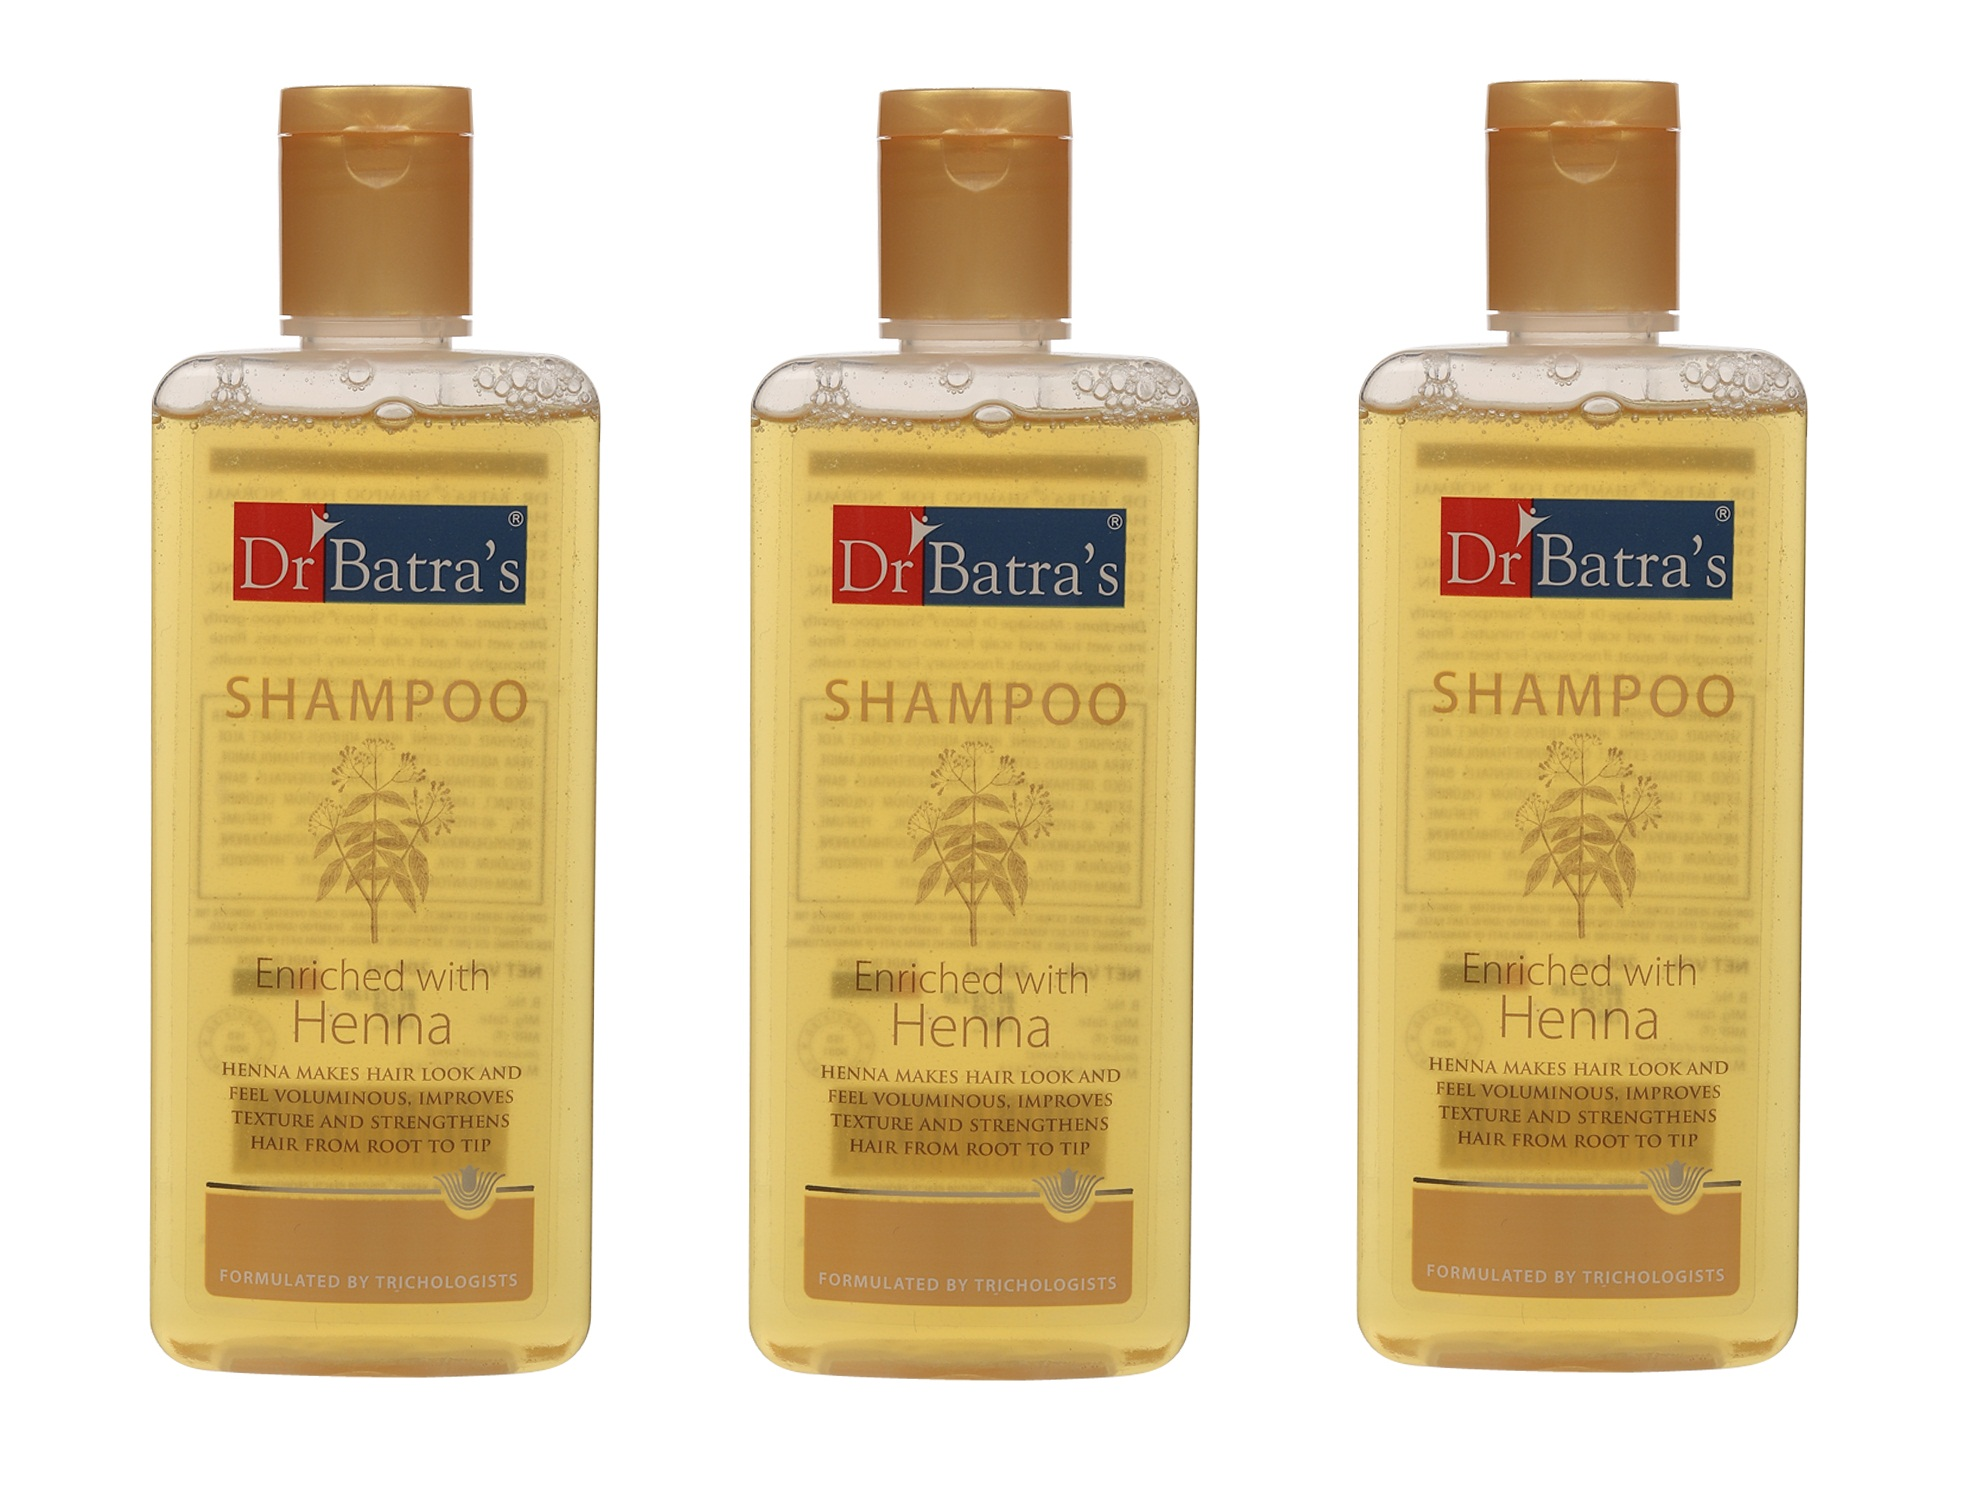 Dr Batra's   Dr Batra's Shampoo Enriched With Henna - 200 ml (Pack of 3)